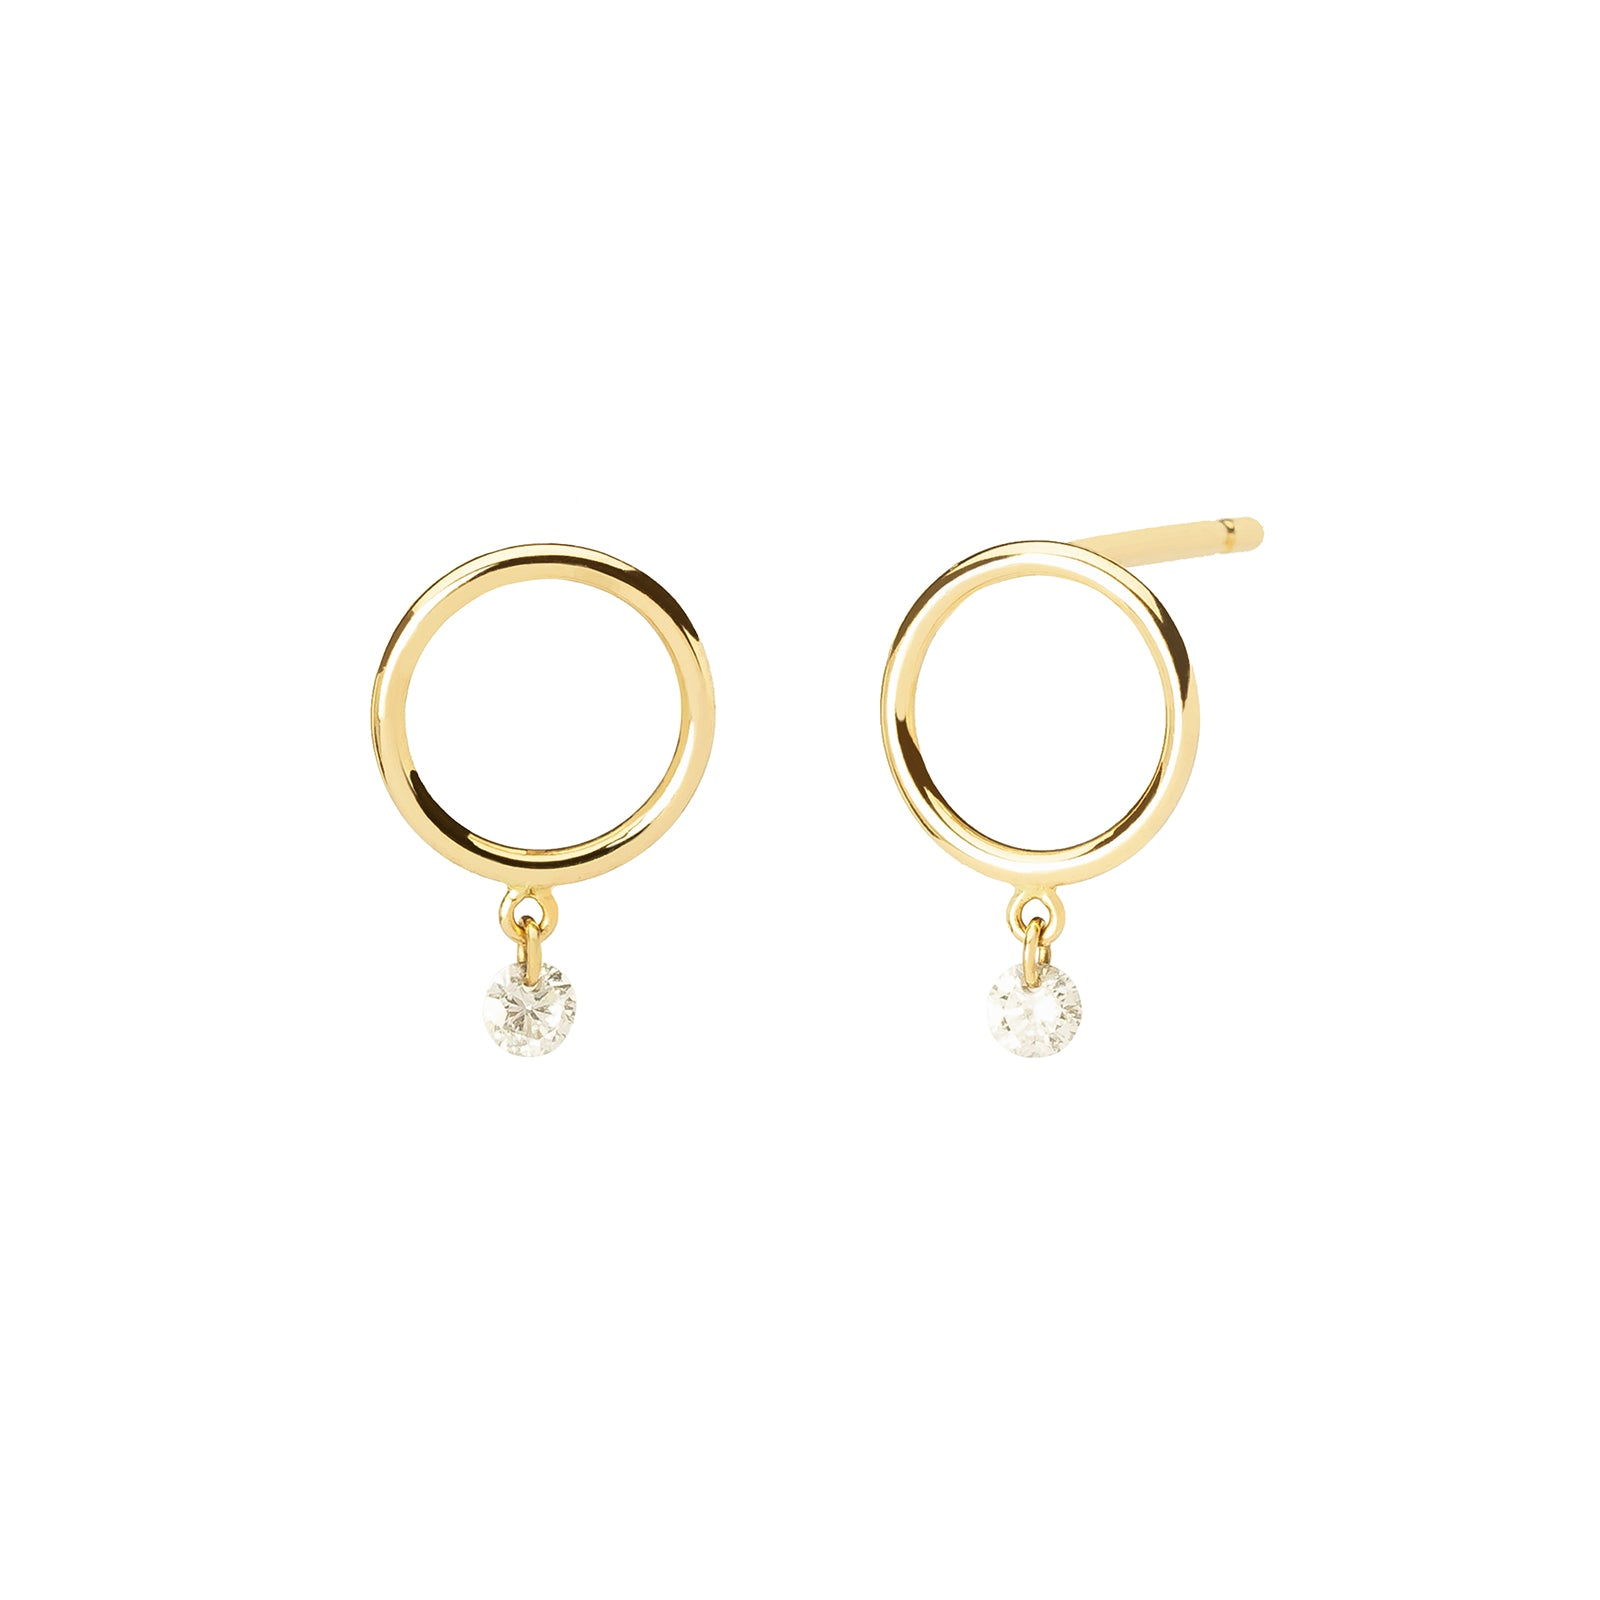 Persée Paris Boheme Single Diamond Earrings - Yellow Gold - Earrings - Broken English Jewelry